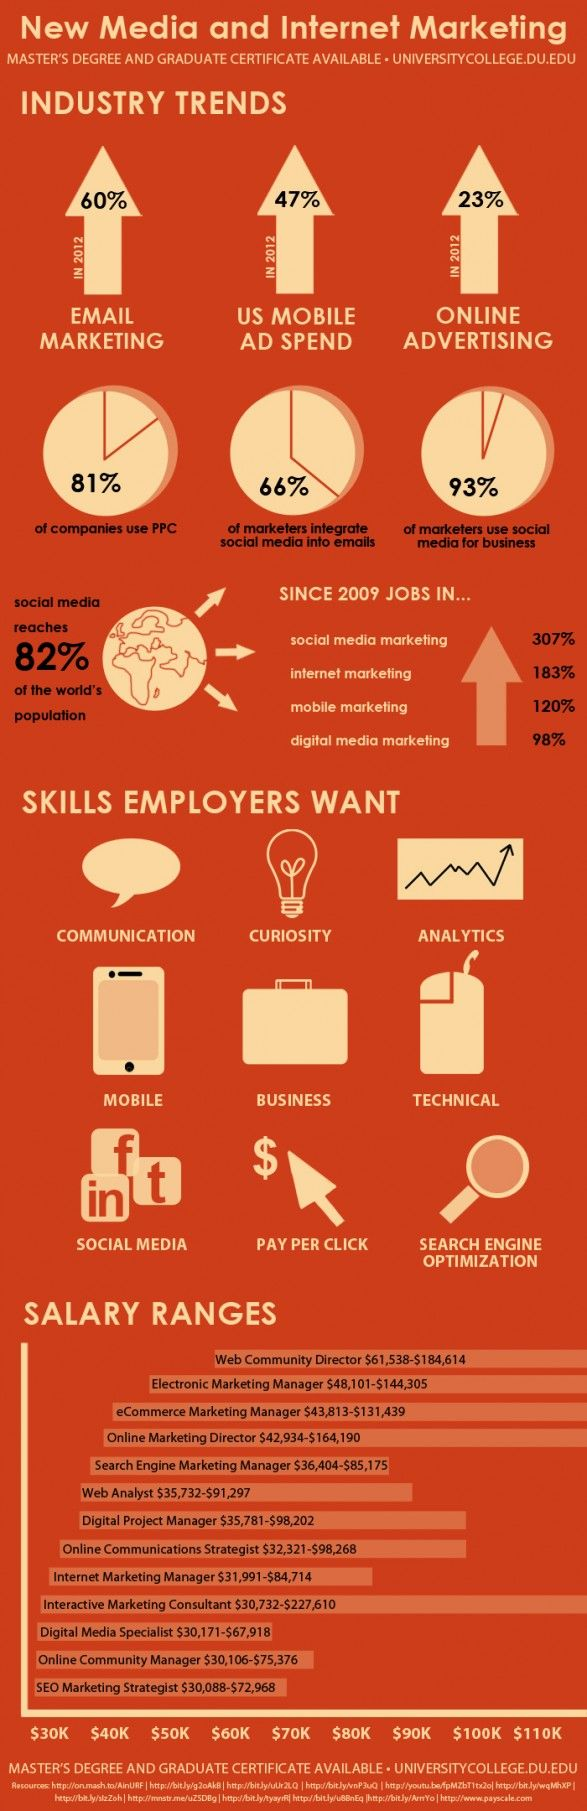 Industry trends, skills employers want, and salary ranges for new media and internet marketing.